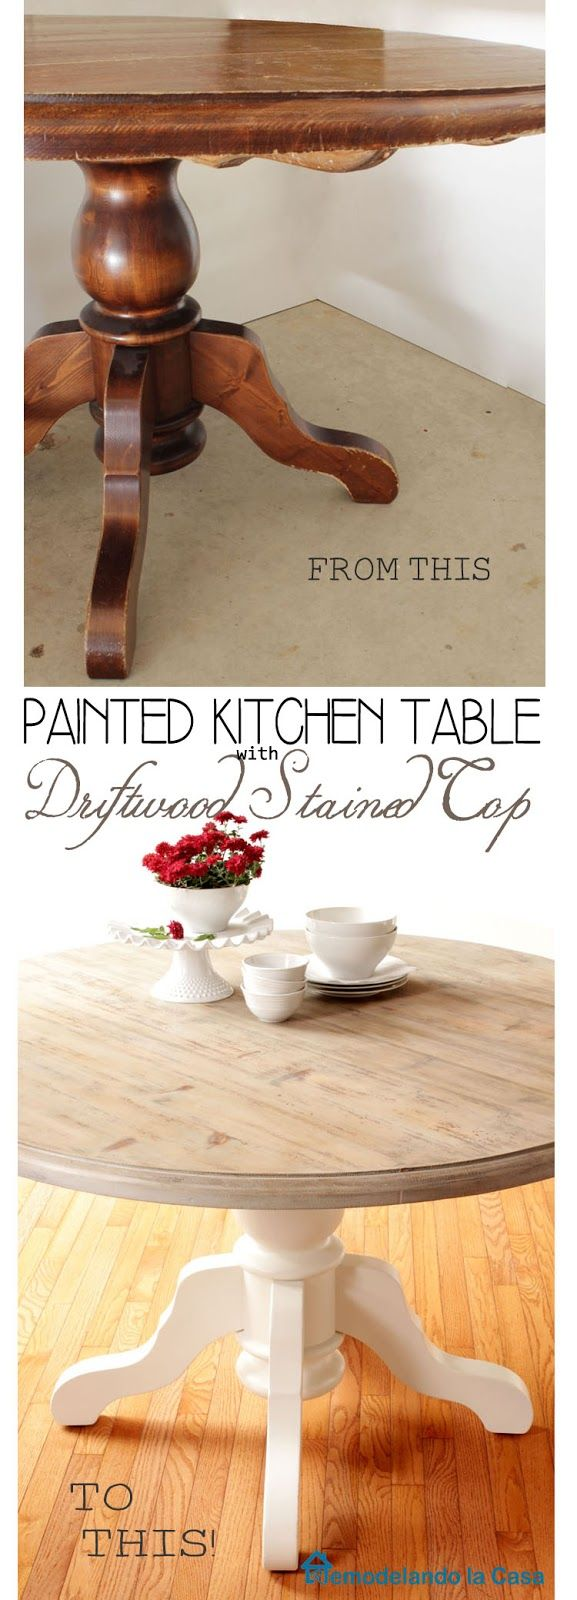 Breakfast set makeover - Painted chairs and table with driftwood stained top.